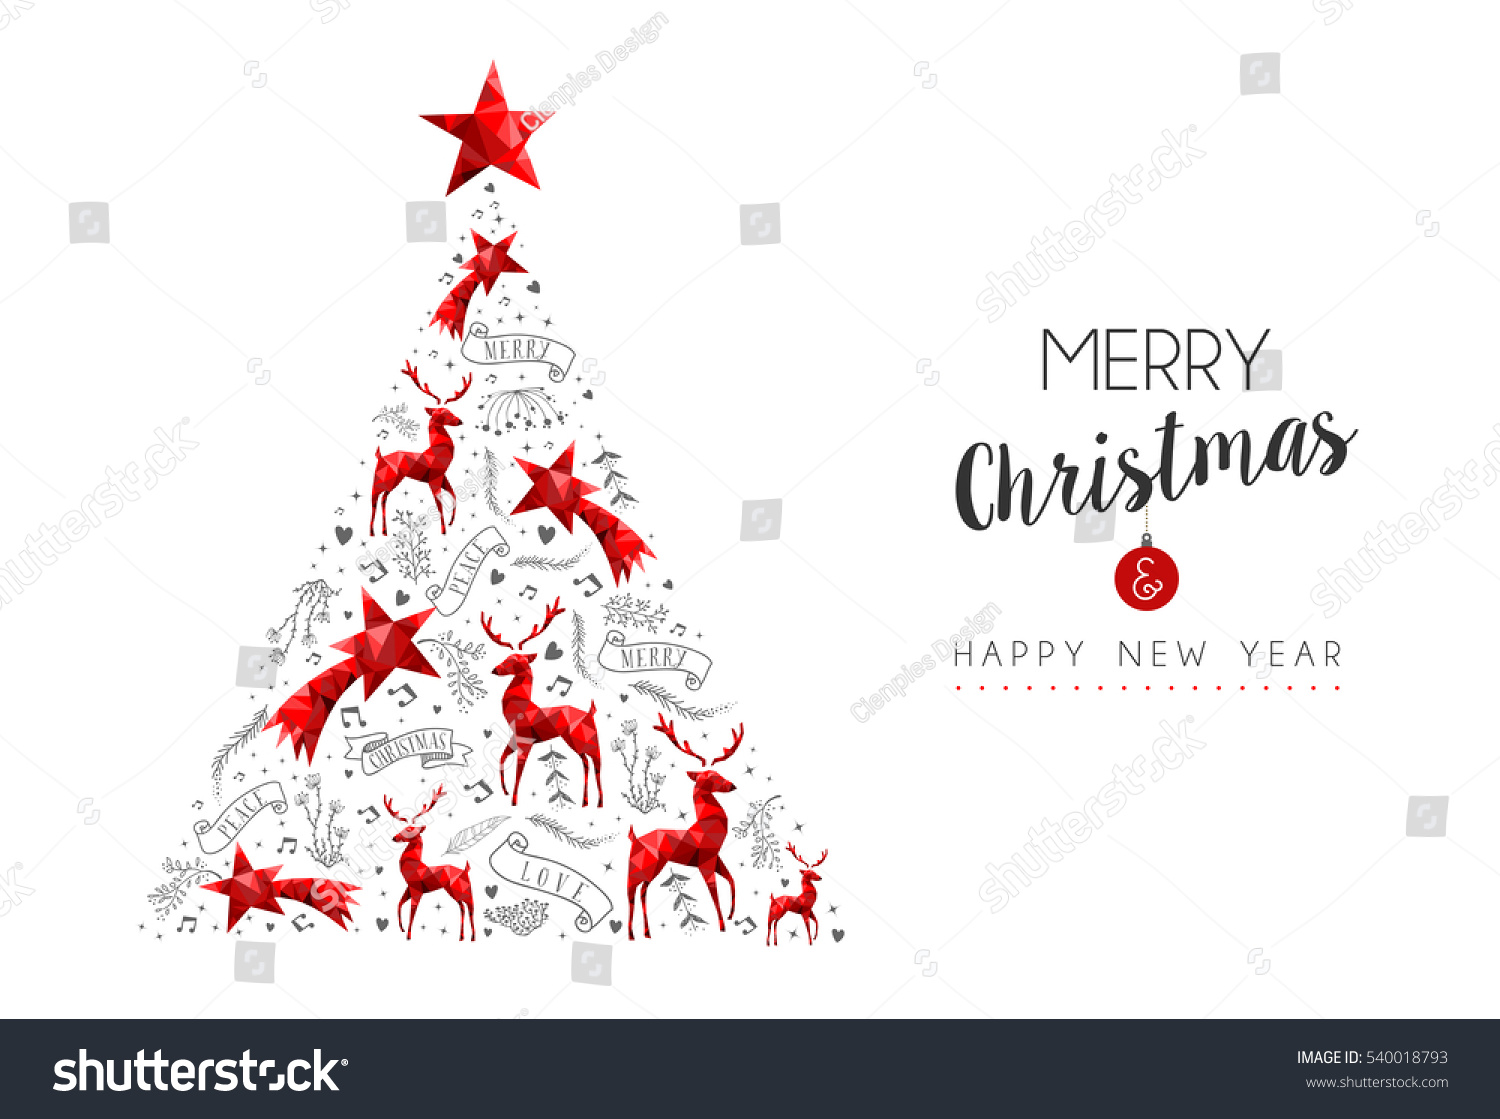 Merry Christmas Happy New Year Red Stock Vector (Royalty Free ...